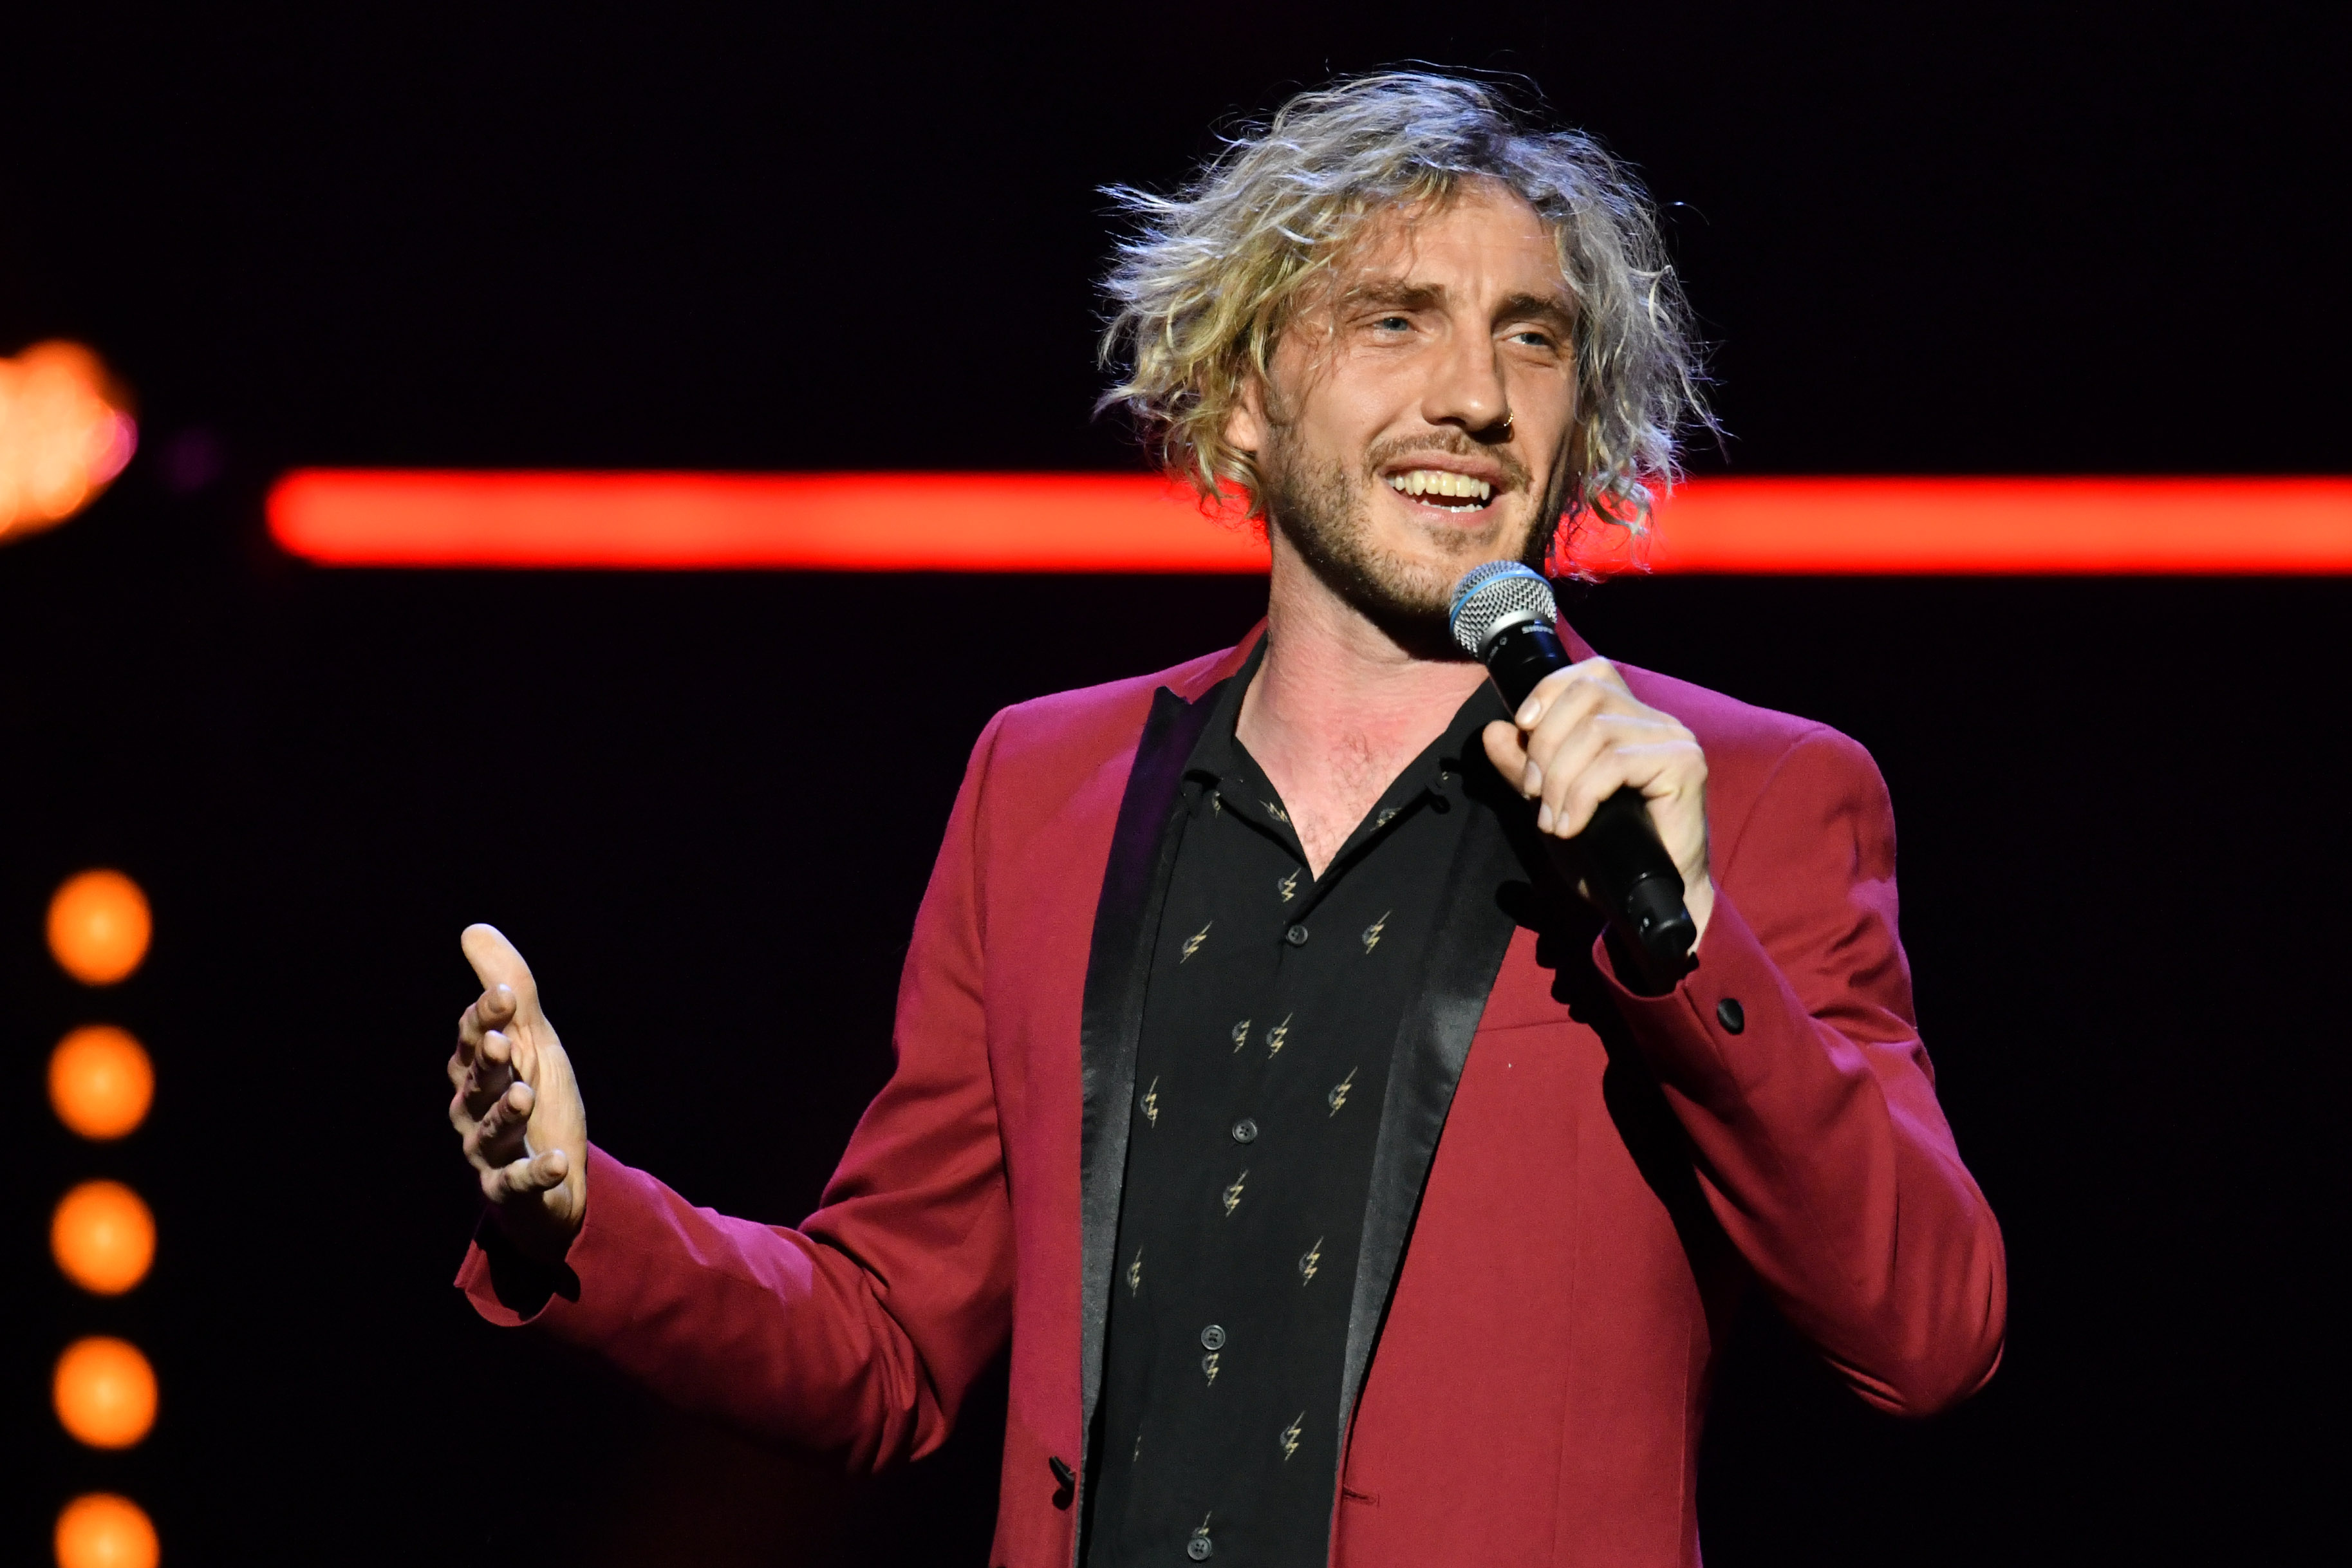 Seann Walsh performs during the Teenage Cancer Trust comedy night, at the Royal Albert Hall, London. (Photo by Matt Crossick/PA Images via Getty Images)